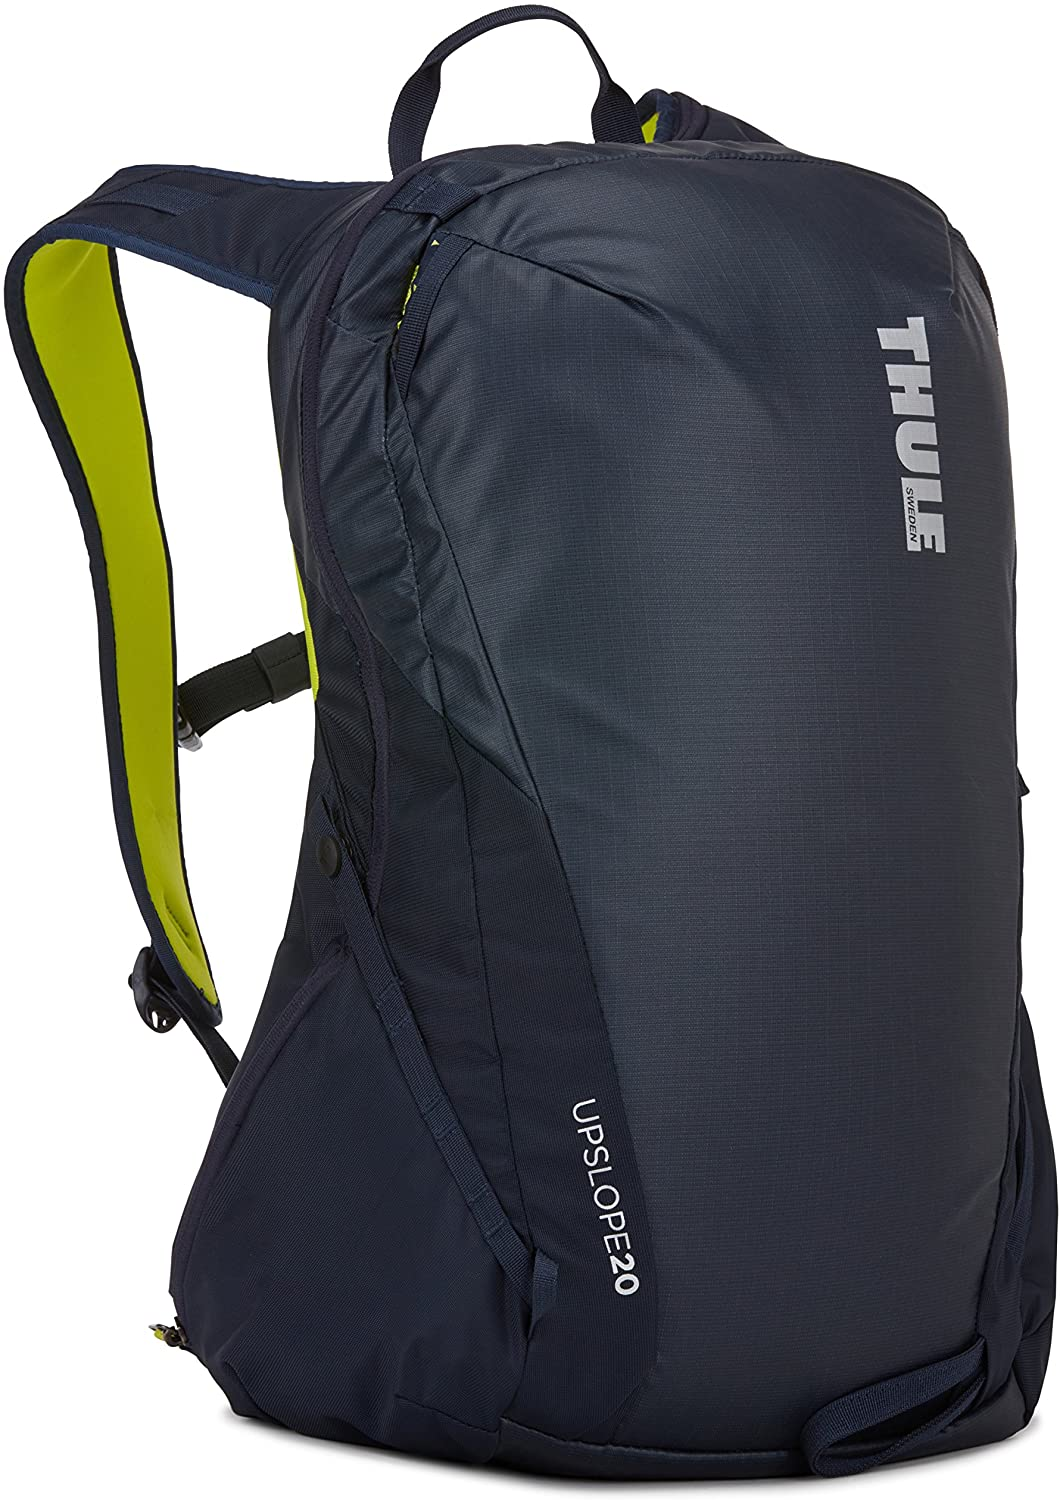 gifts-for-skiers-backpack